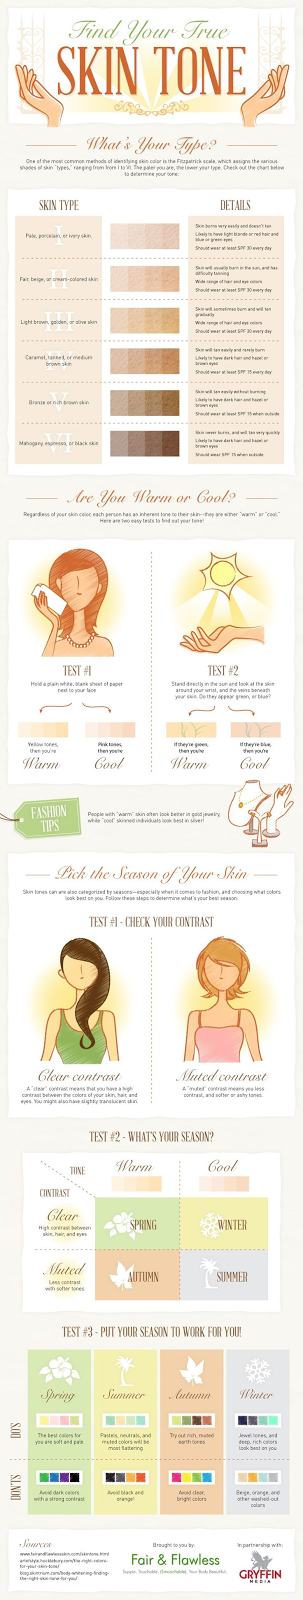 Skin care : How To Find Your Skin Tone